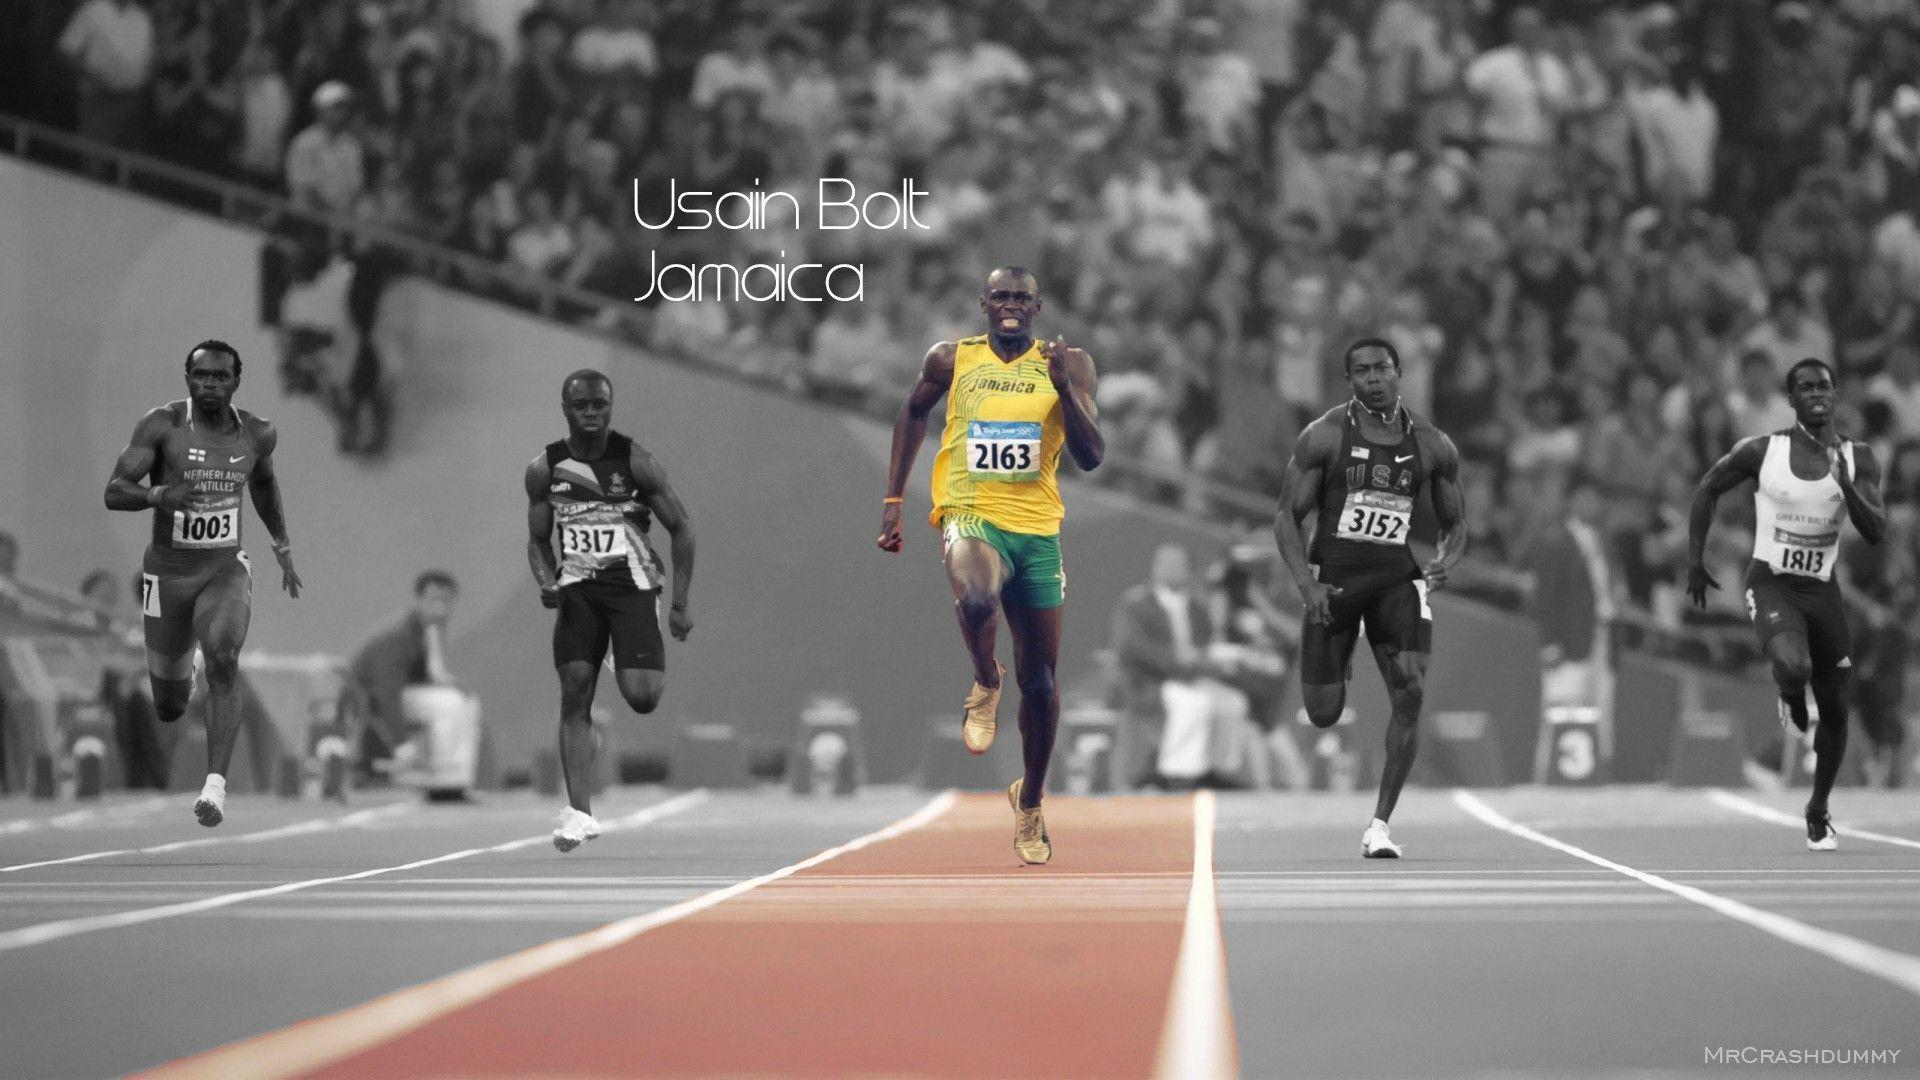 Usain Bolt widescreen wallpapers in hd - HD Wallpaper